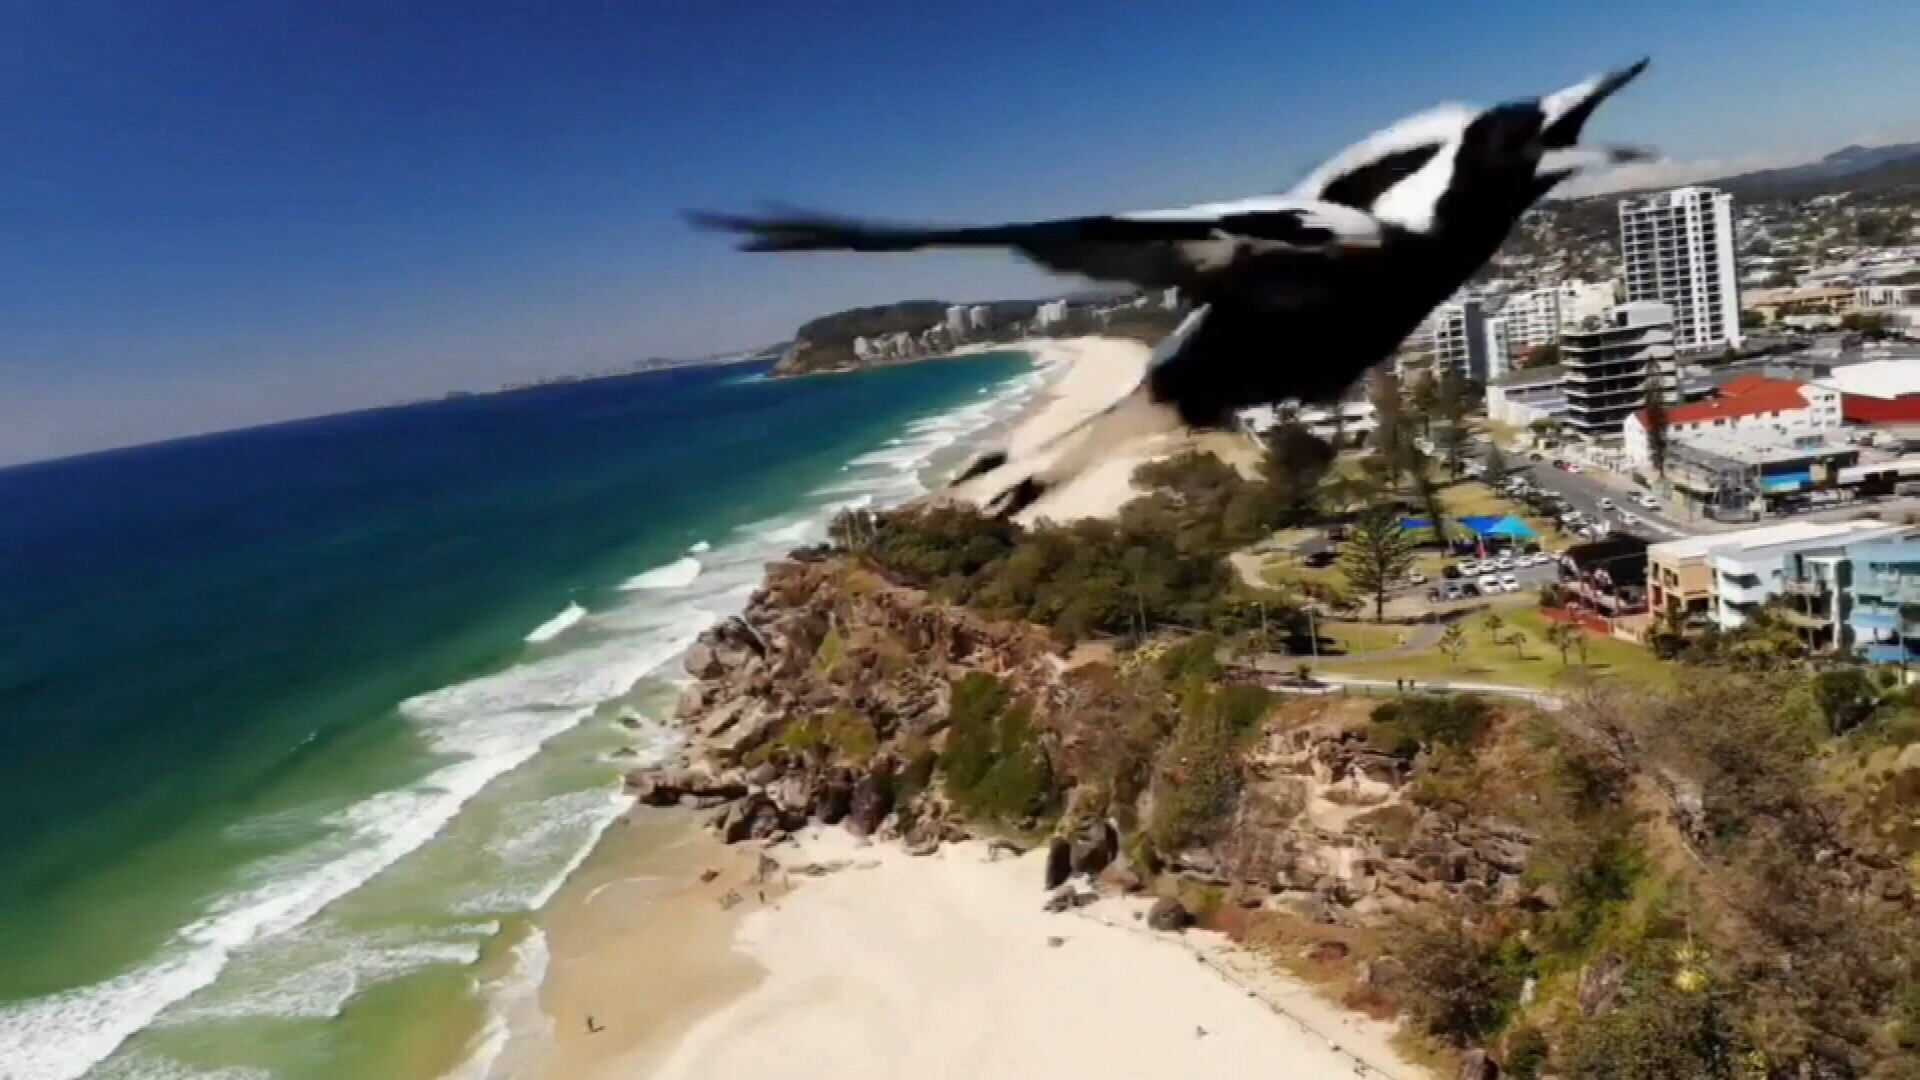 Drone camera captures magpie swooping at it